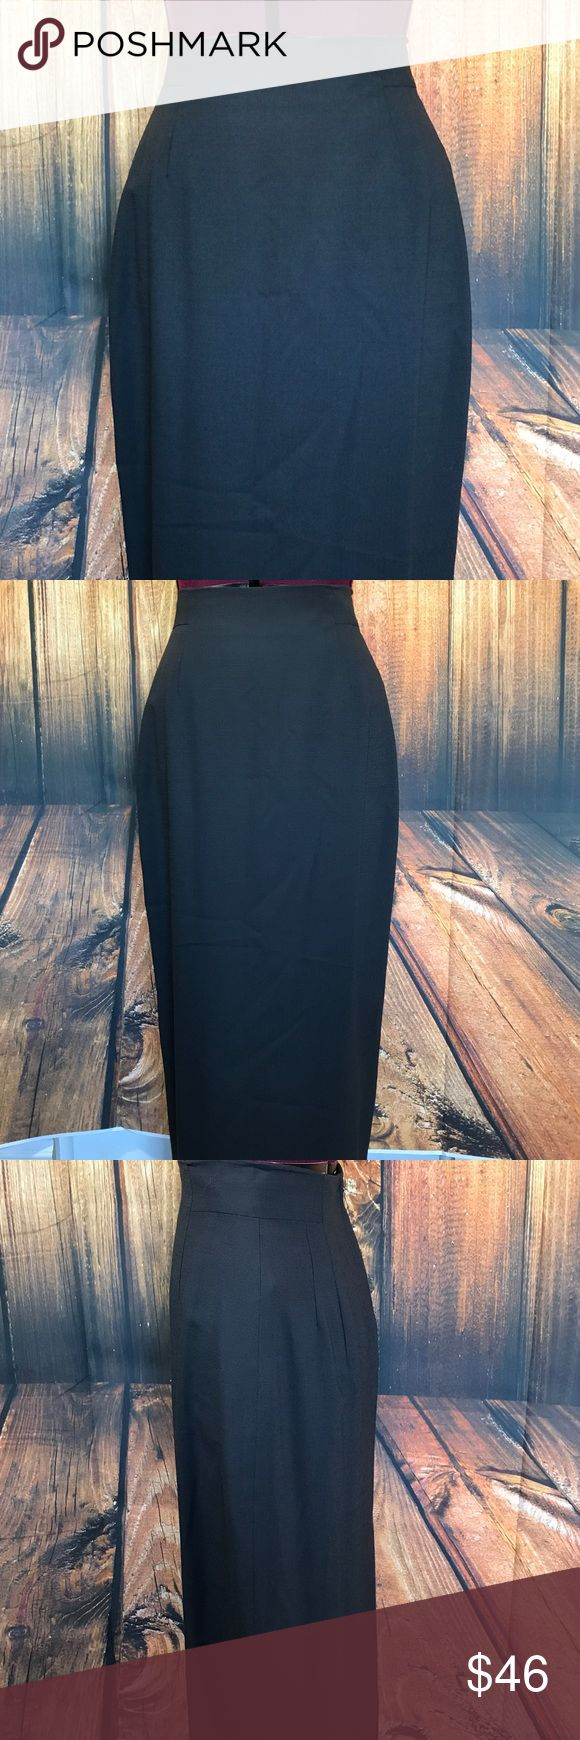 """Bebe High Waist Full Length Sexy Pencil Wool Skirt Fabulous skirt by Bebe  High waist  Darts in front and back  Center back Zip  Center back kick vent  Charcoal gray color  100% wool  Size 8  Measures 13"""" across waistband, flat  Measures 19"""" across at hip area, 12"""" down from the waistband  Measures 36.5"""" long  Gently worn, good condition  Super chic! bebe Skirts Pencil"""